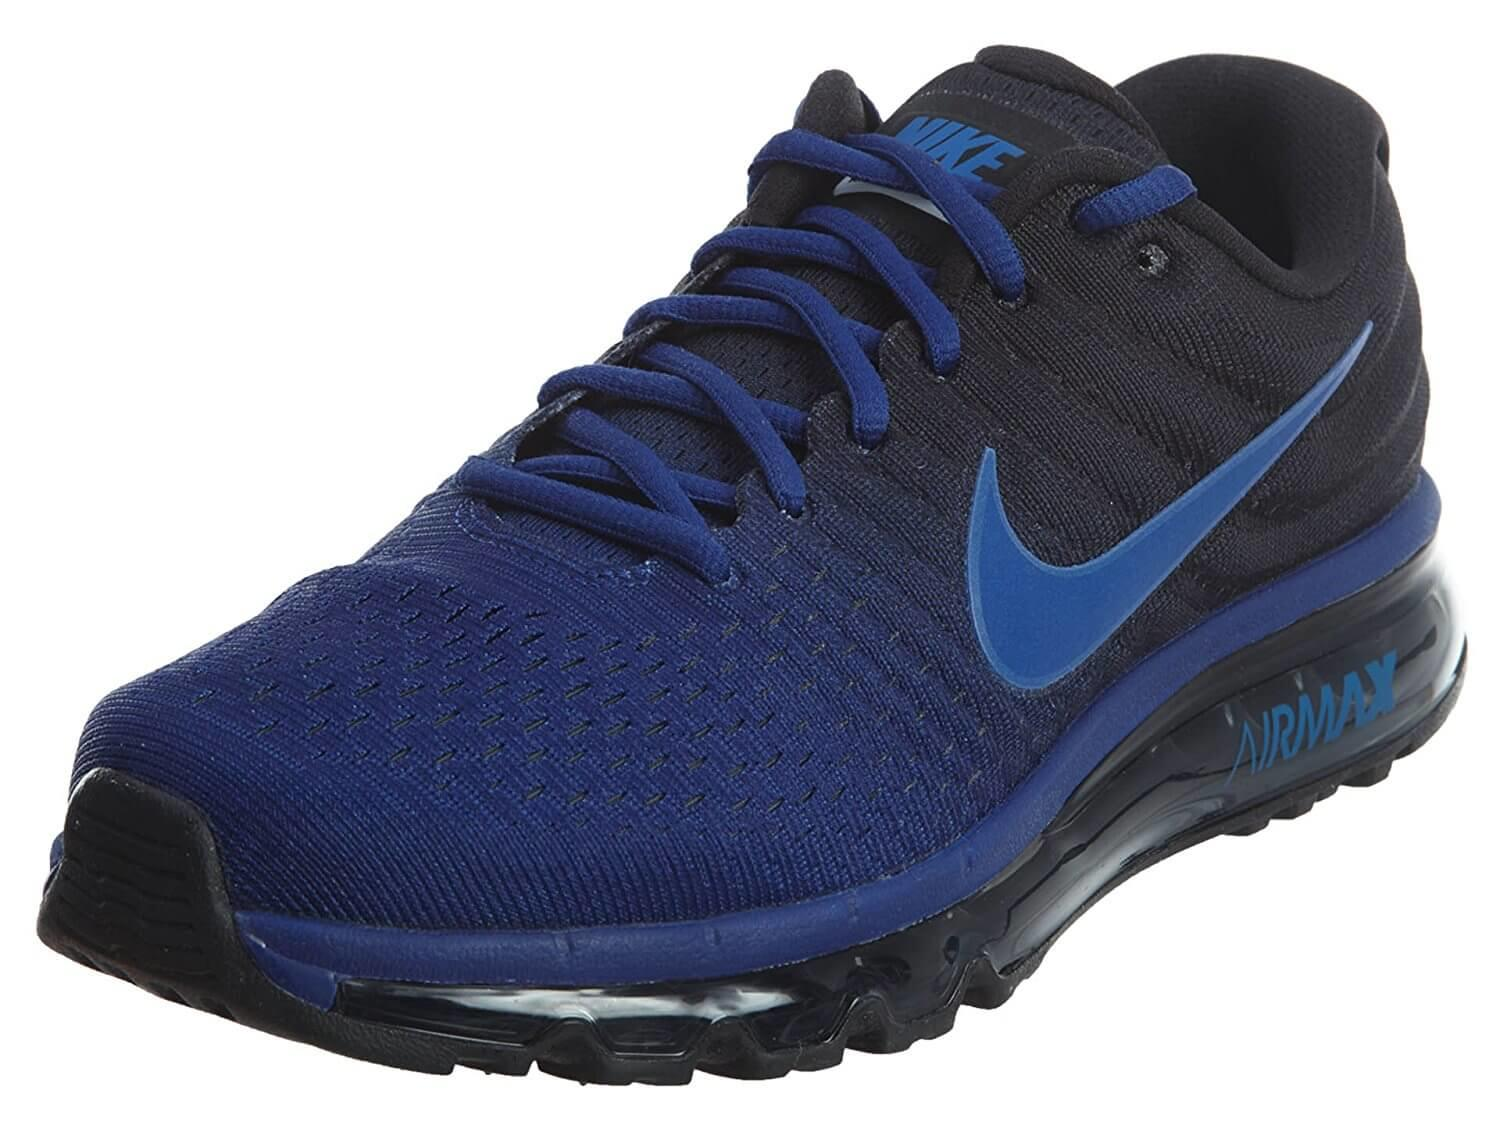 wholesale dealer e4181 87e01 ... Nike Air Max 2017 Daily Running shoe ...